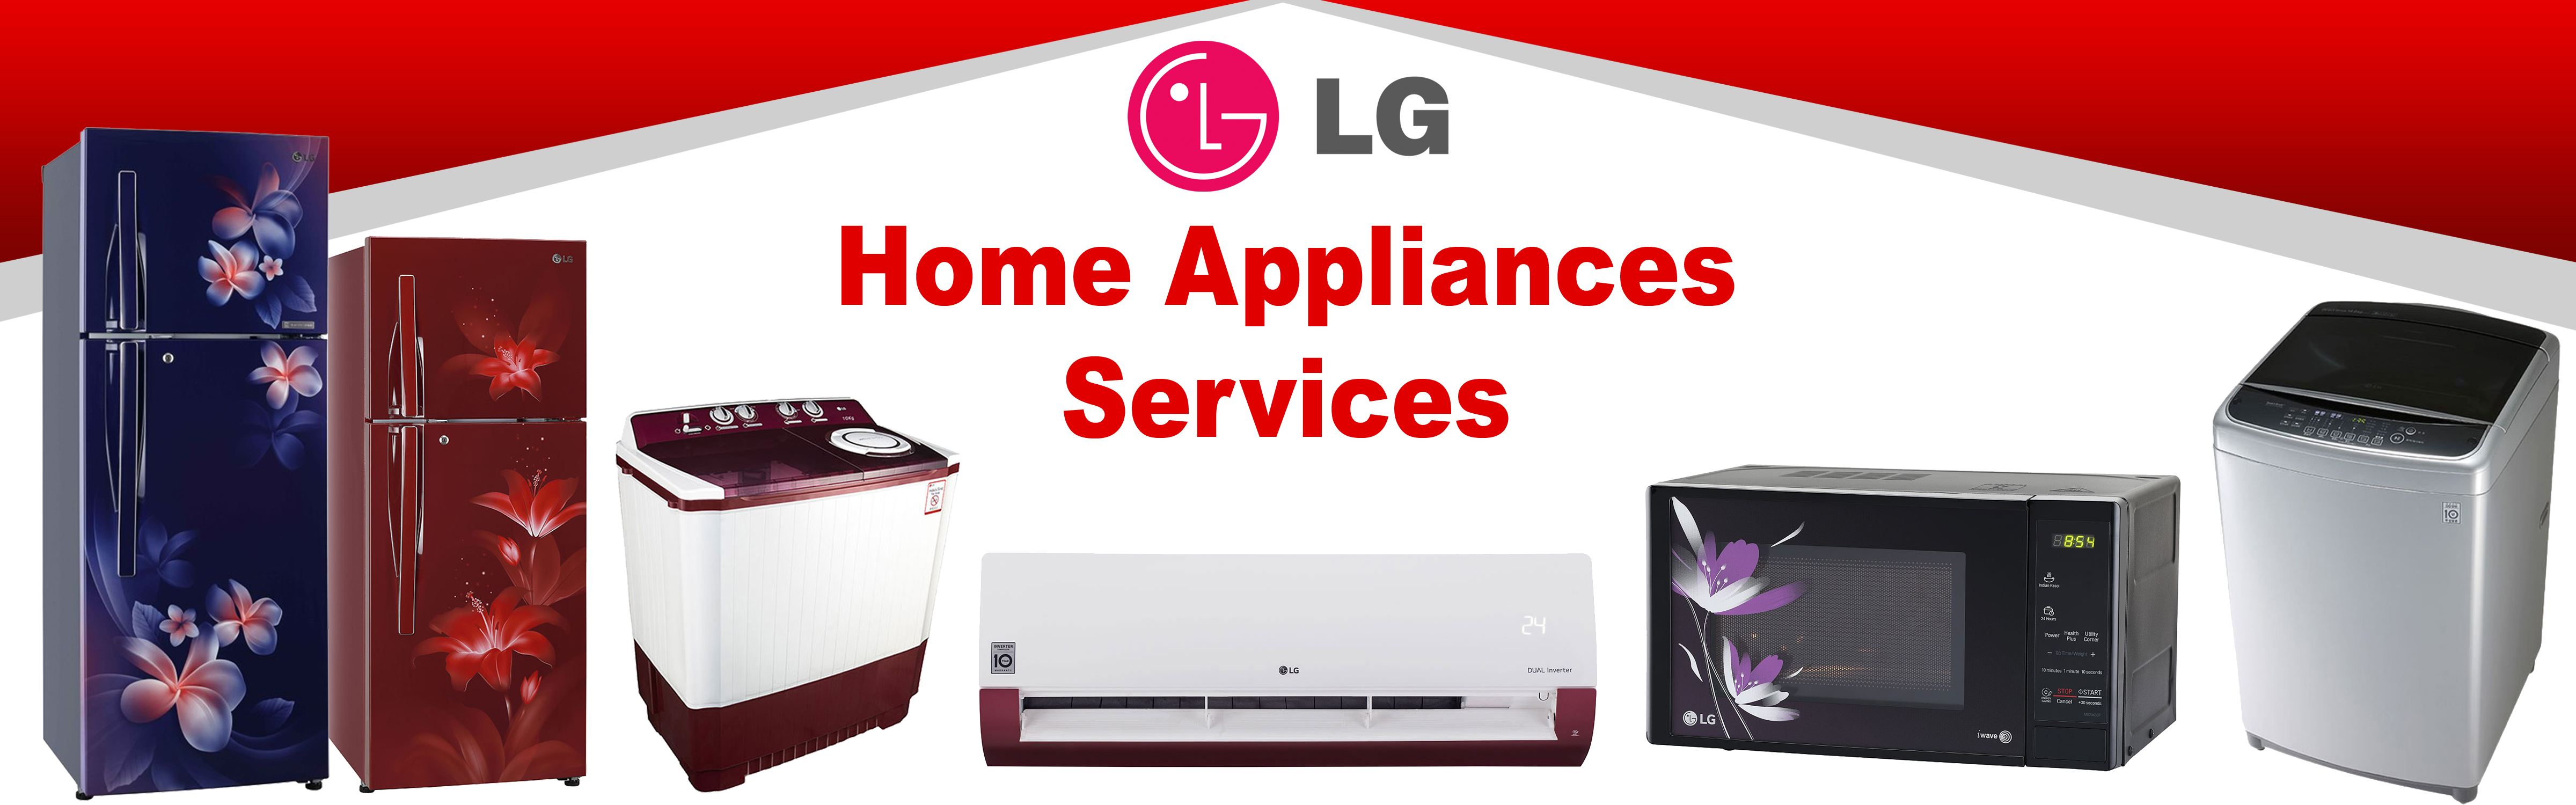 LG Service Support | LG Service Centres in Chennai With Many